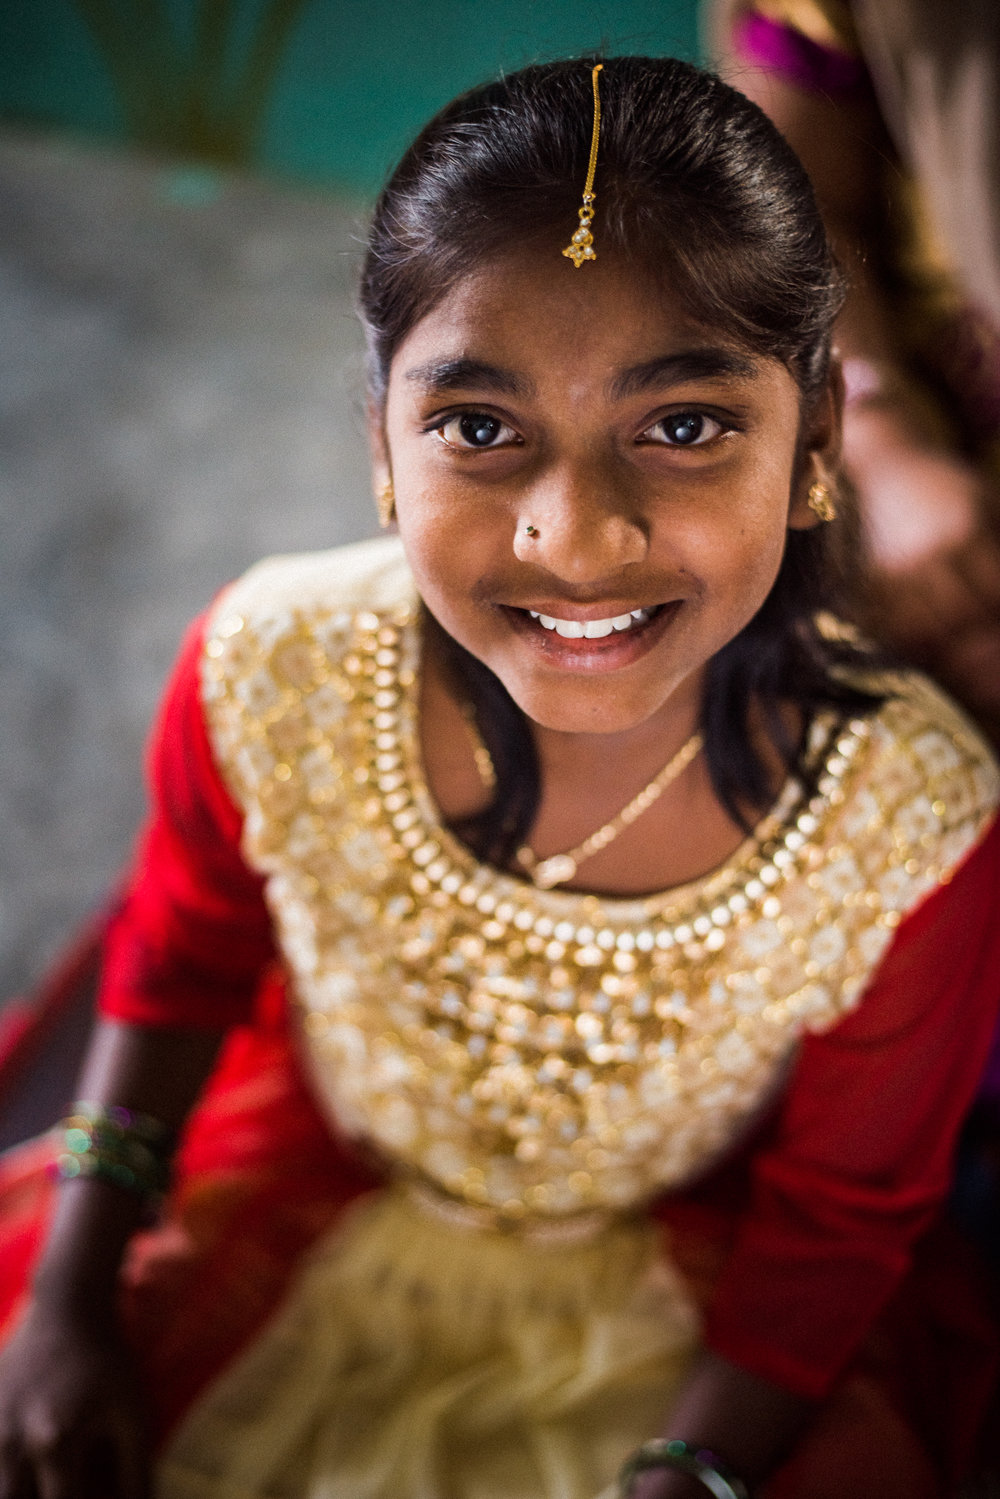 INDIA_HUMANITARIAN_WORK_TARASHUPE_PHOTOGRAPHY_003.jpg